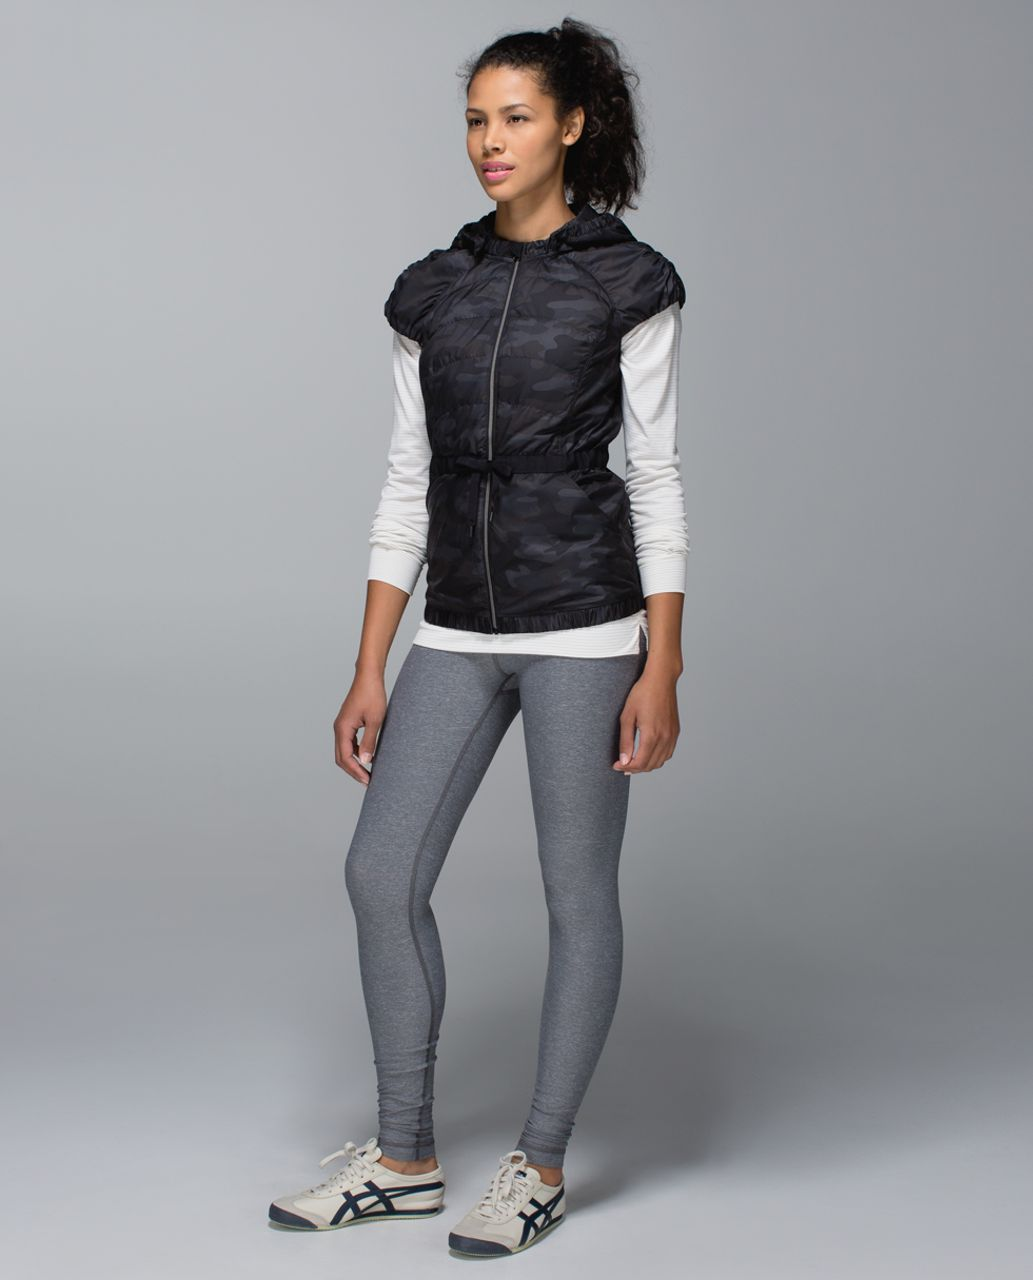 Lululemon Spring Fling Puffy Vest - Lotus Camo Black